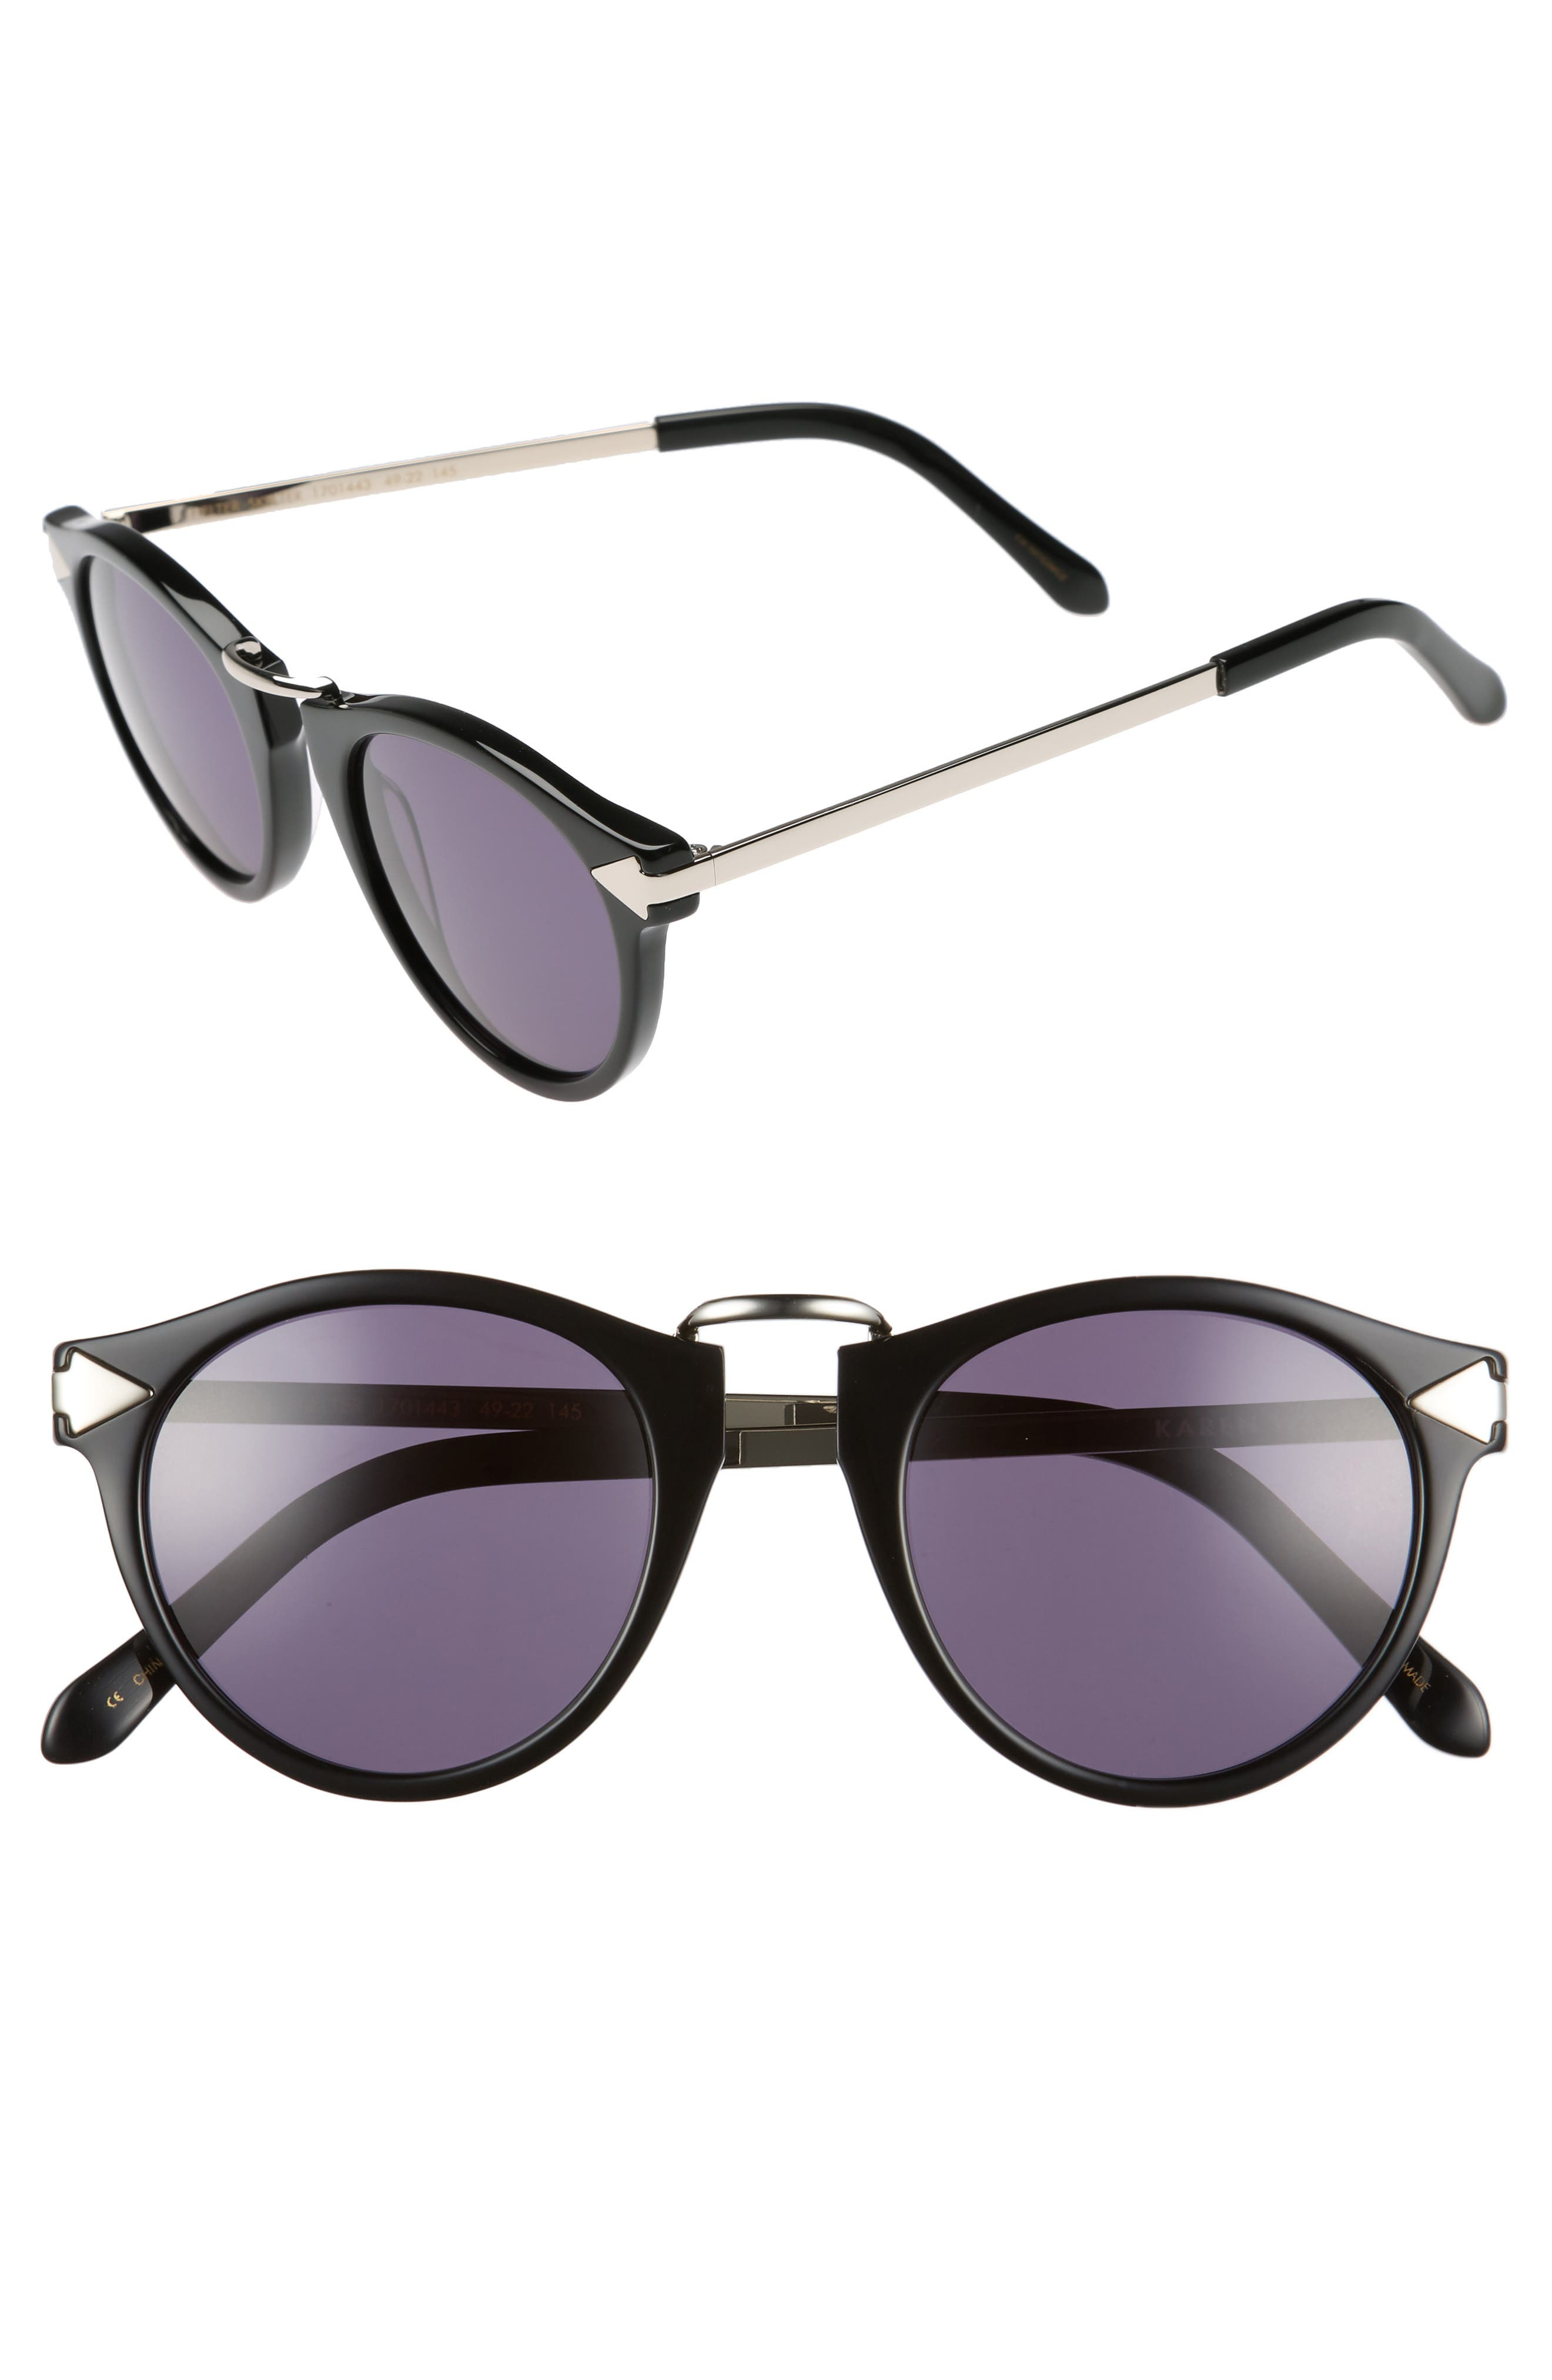 Karen Walker 49MM SUNGLASSES - BLACK